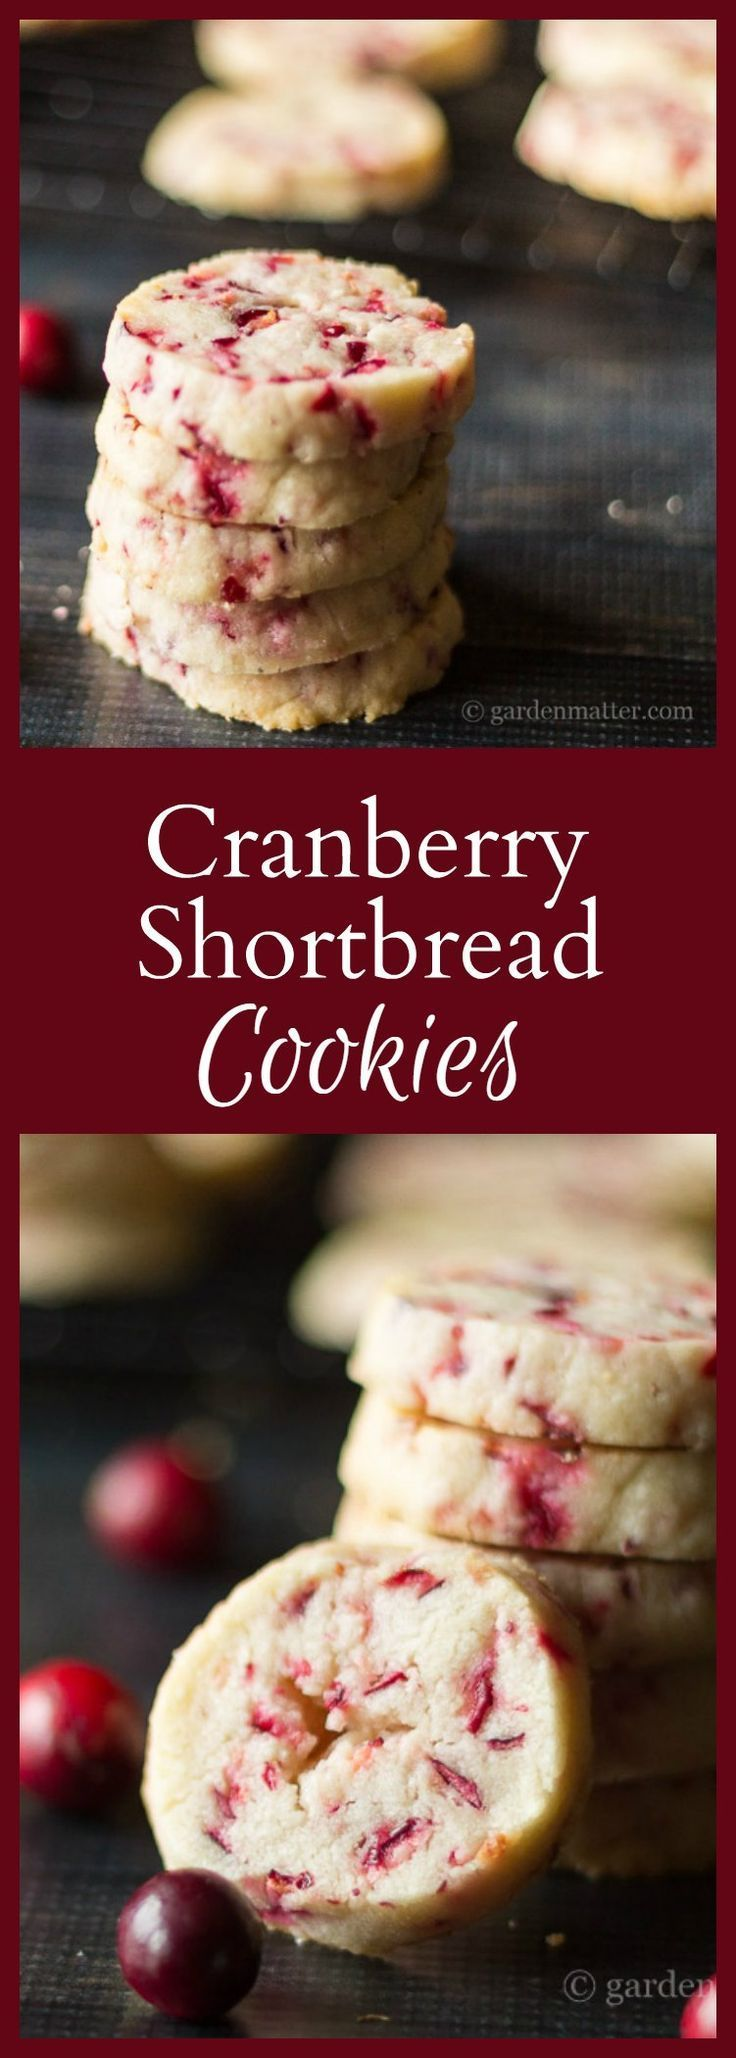 Fresh Cranberry Shortbread Cookie Recipe For The Holidays